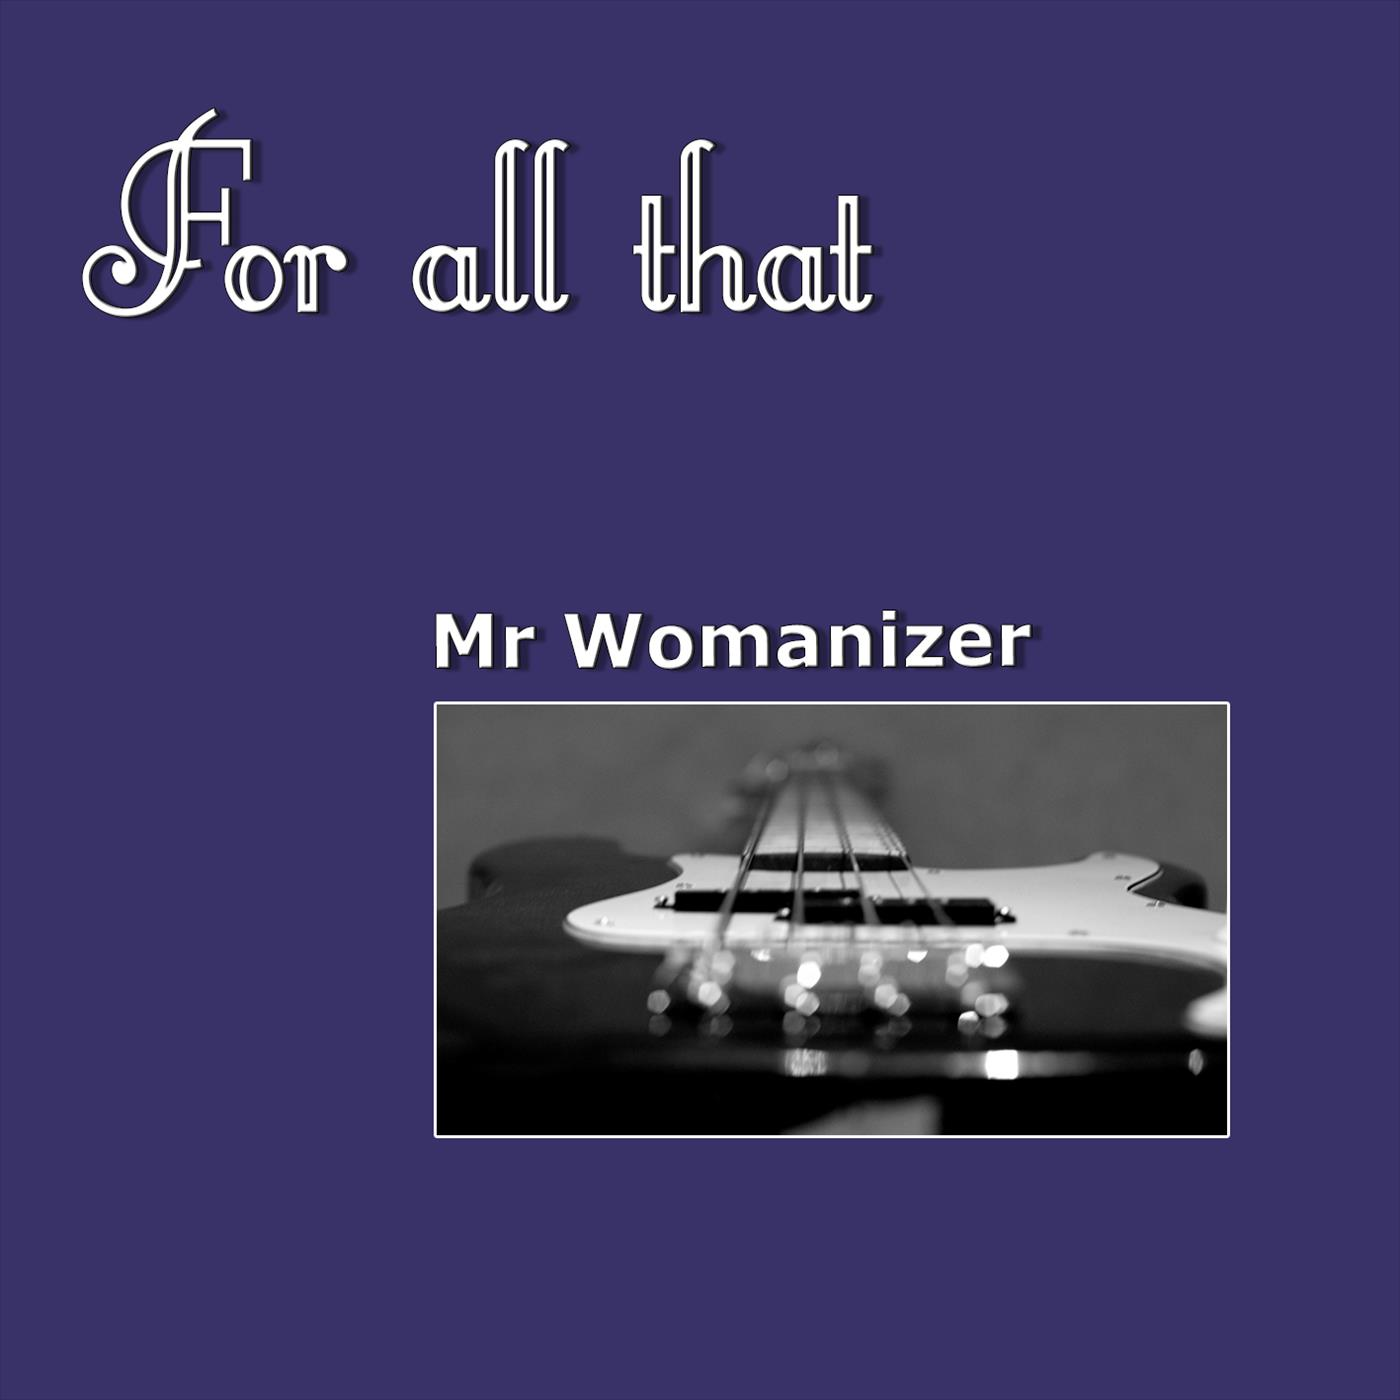 Mr Womanizer